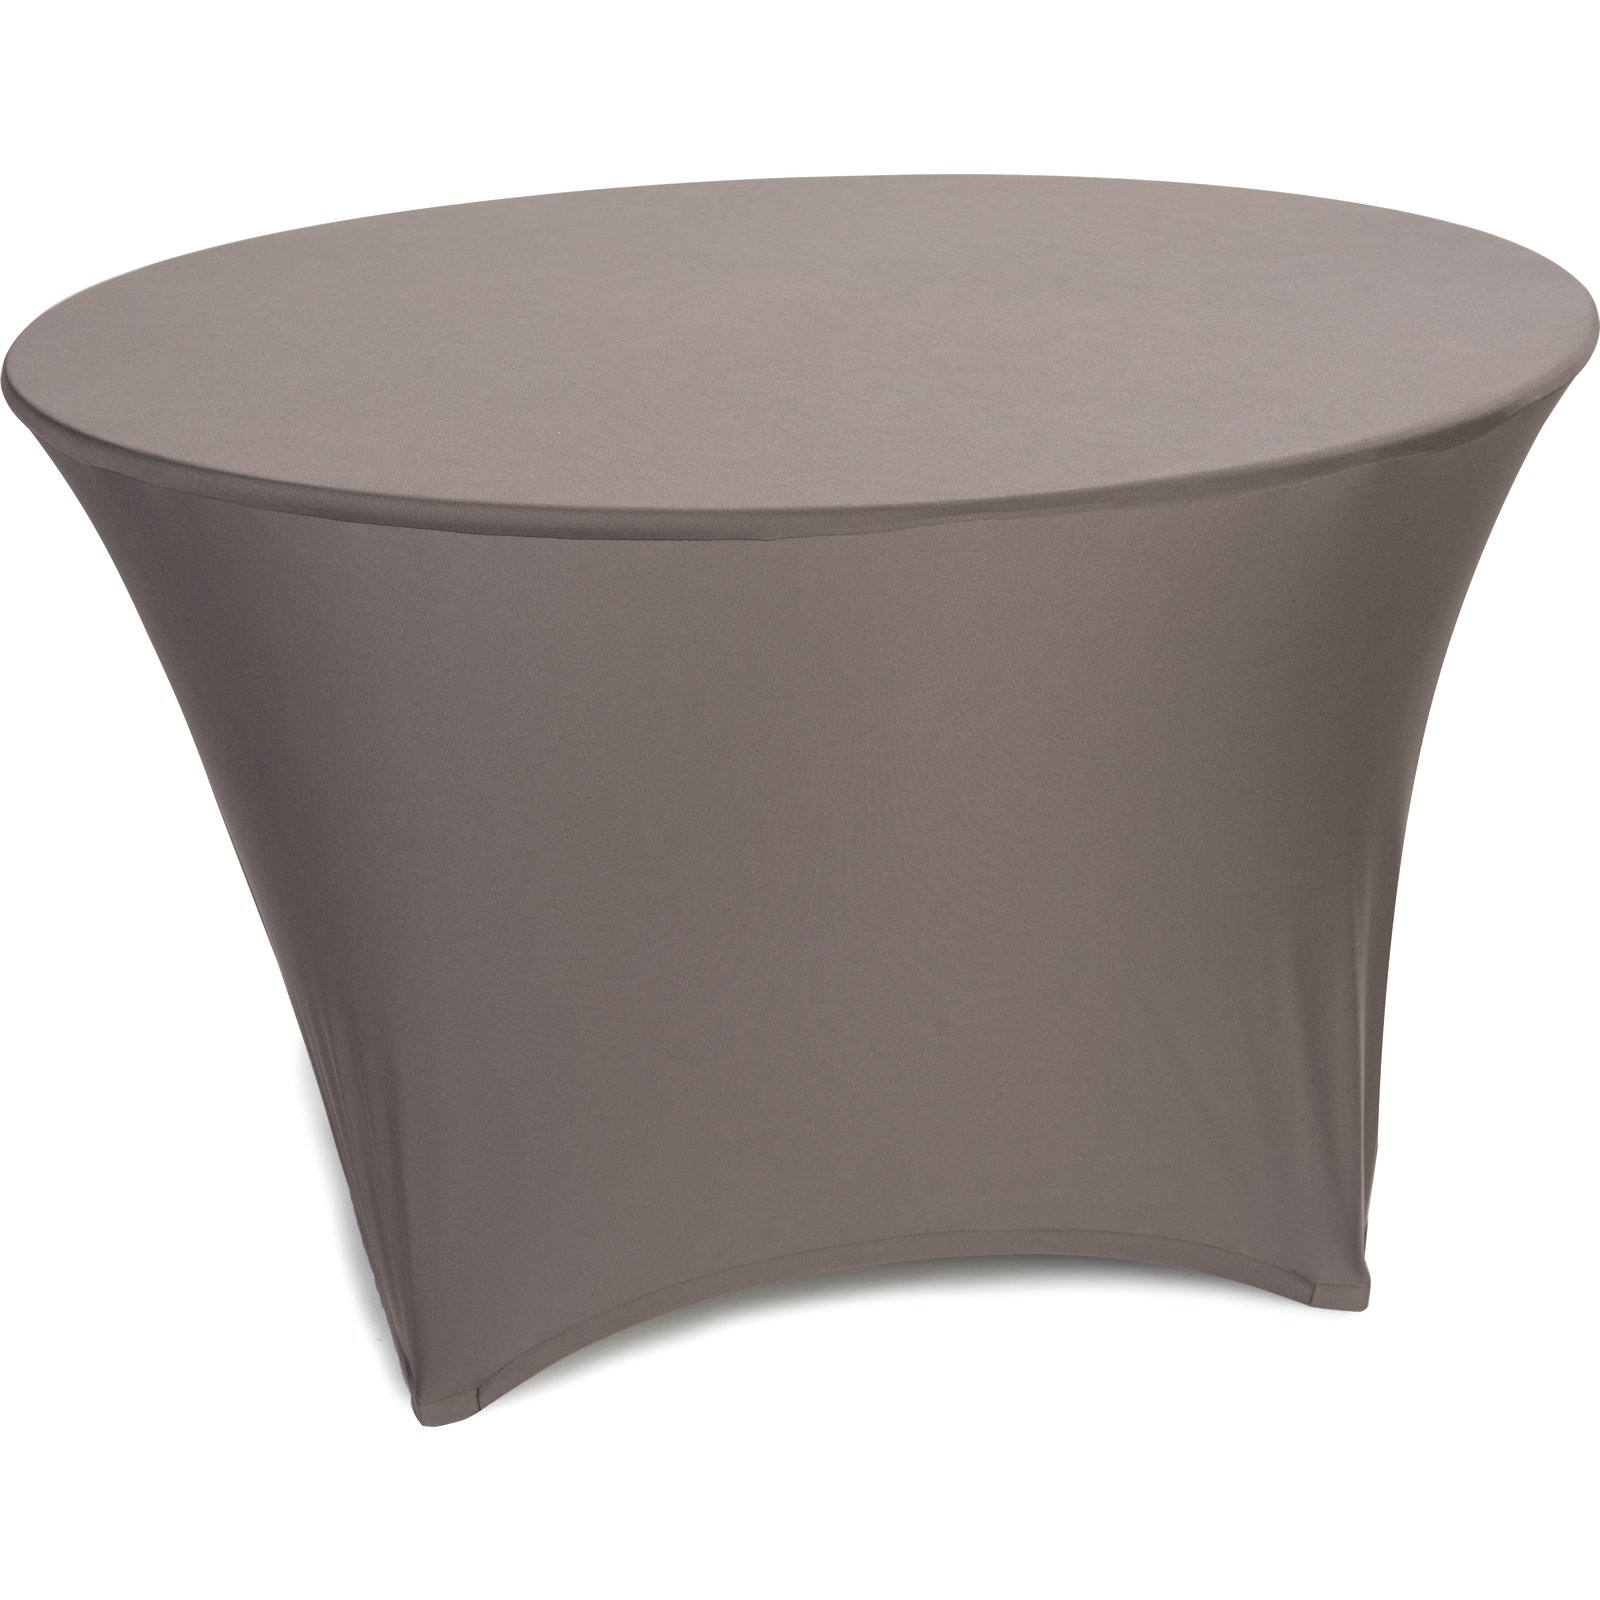 Emb5026r48010 Embrace Round Stretch Table Cover 48 White